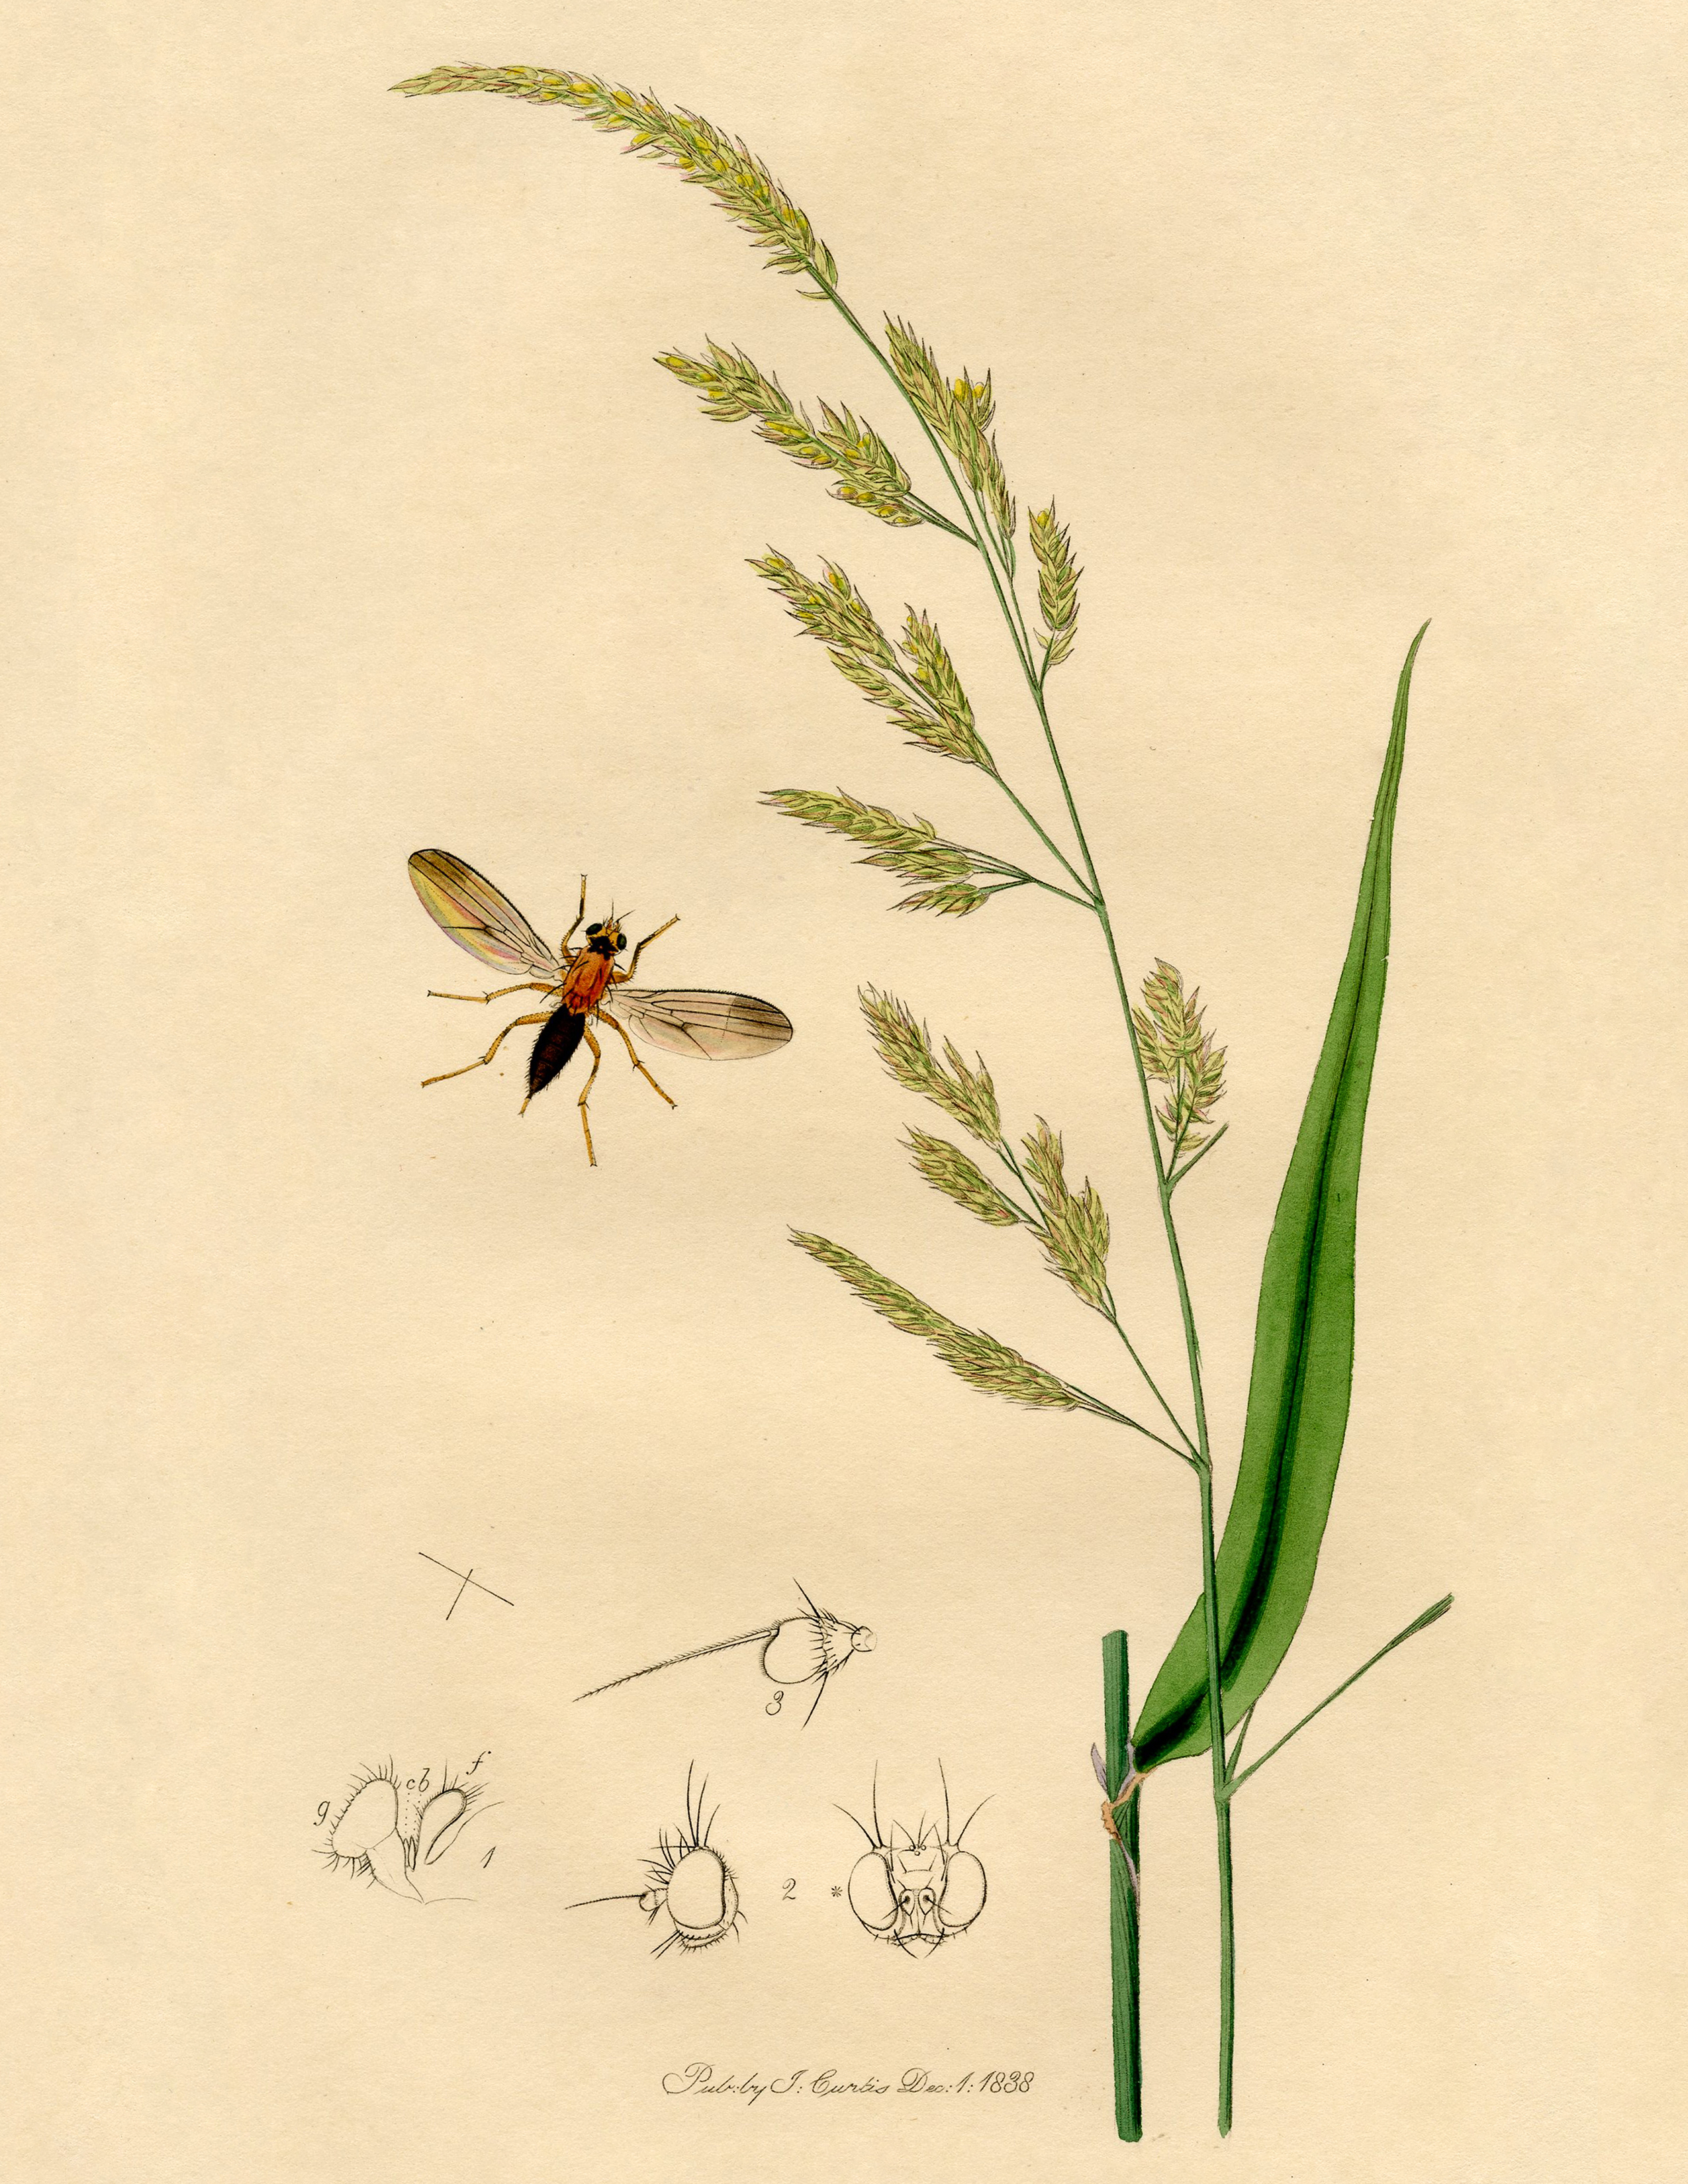 Antique Botanical Print with Insect